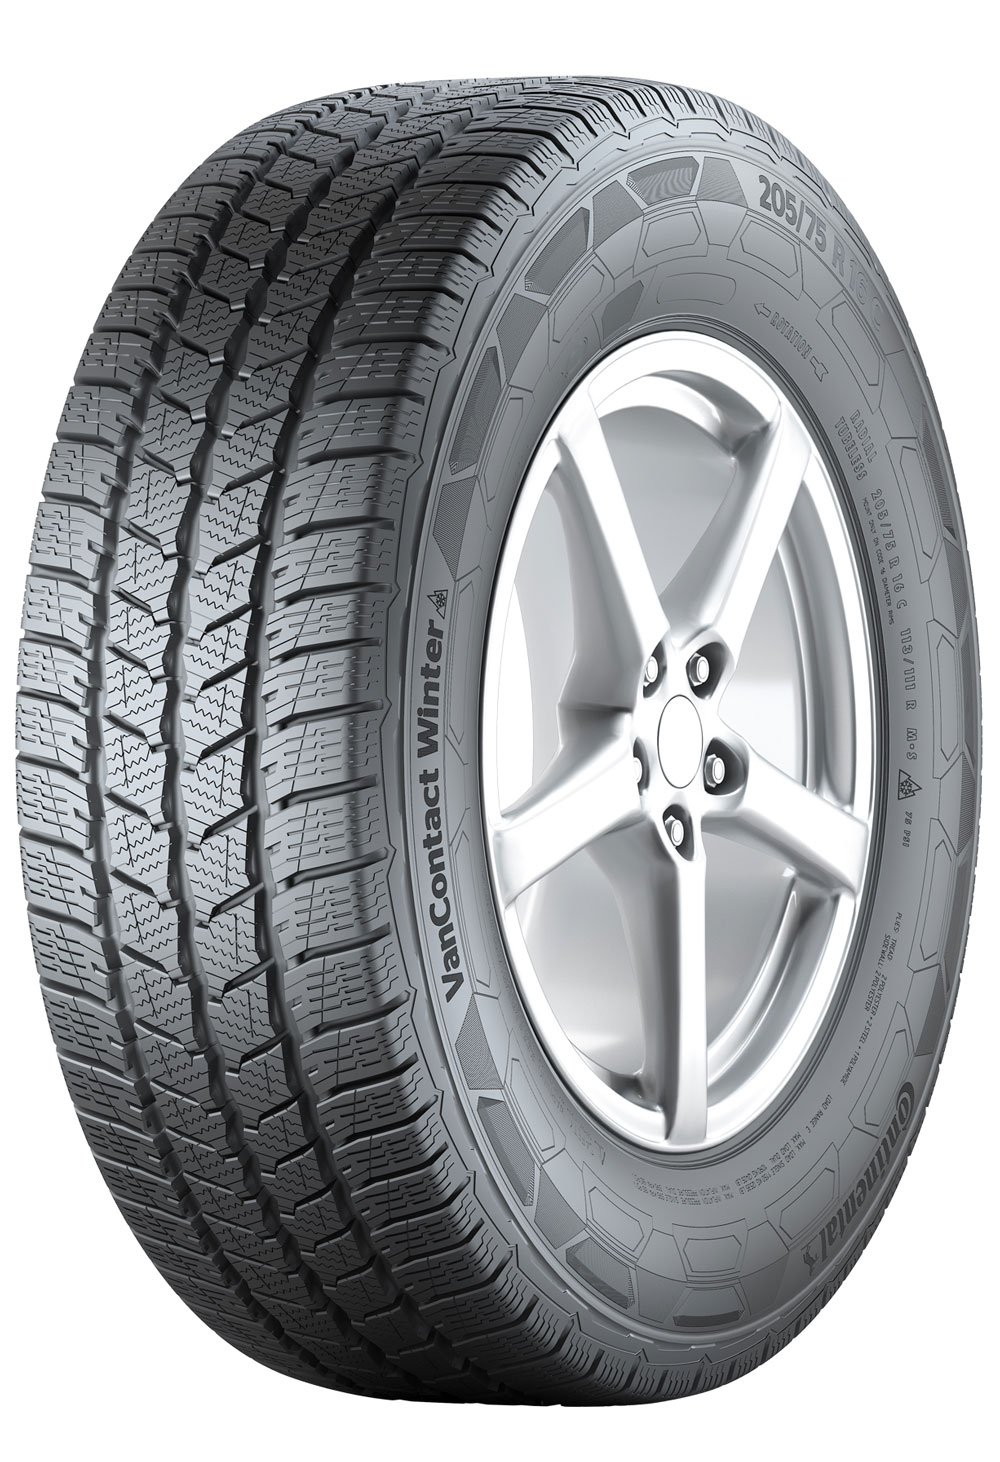 Anvelope Continental Van Contact Winter 225/65R16C 112/110R Iarna